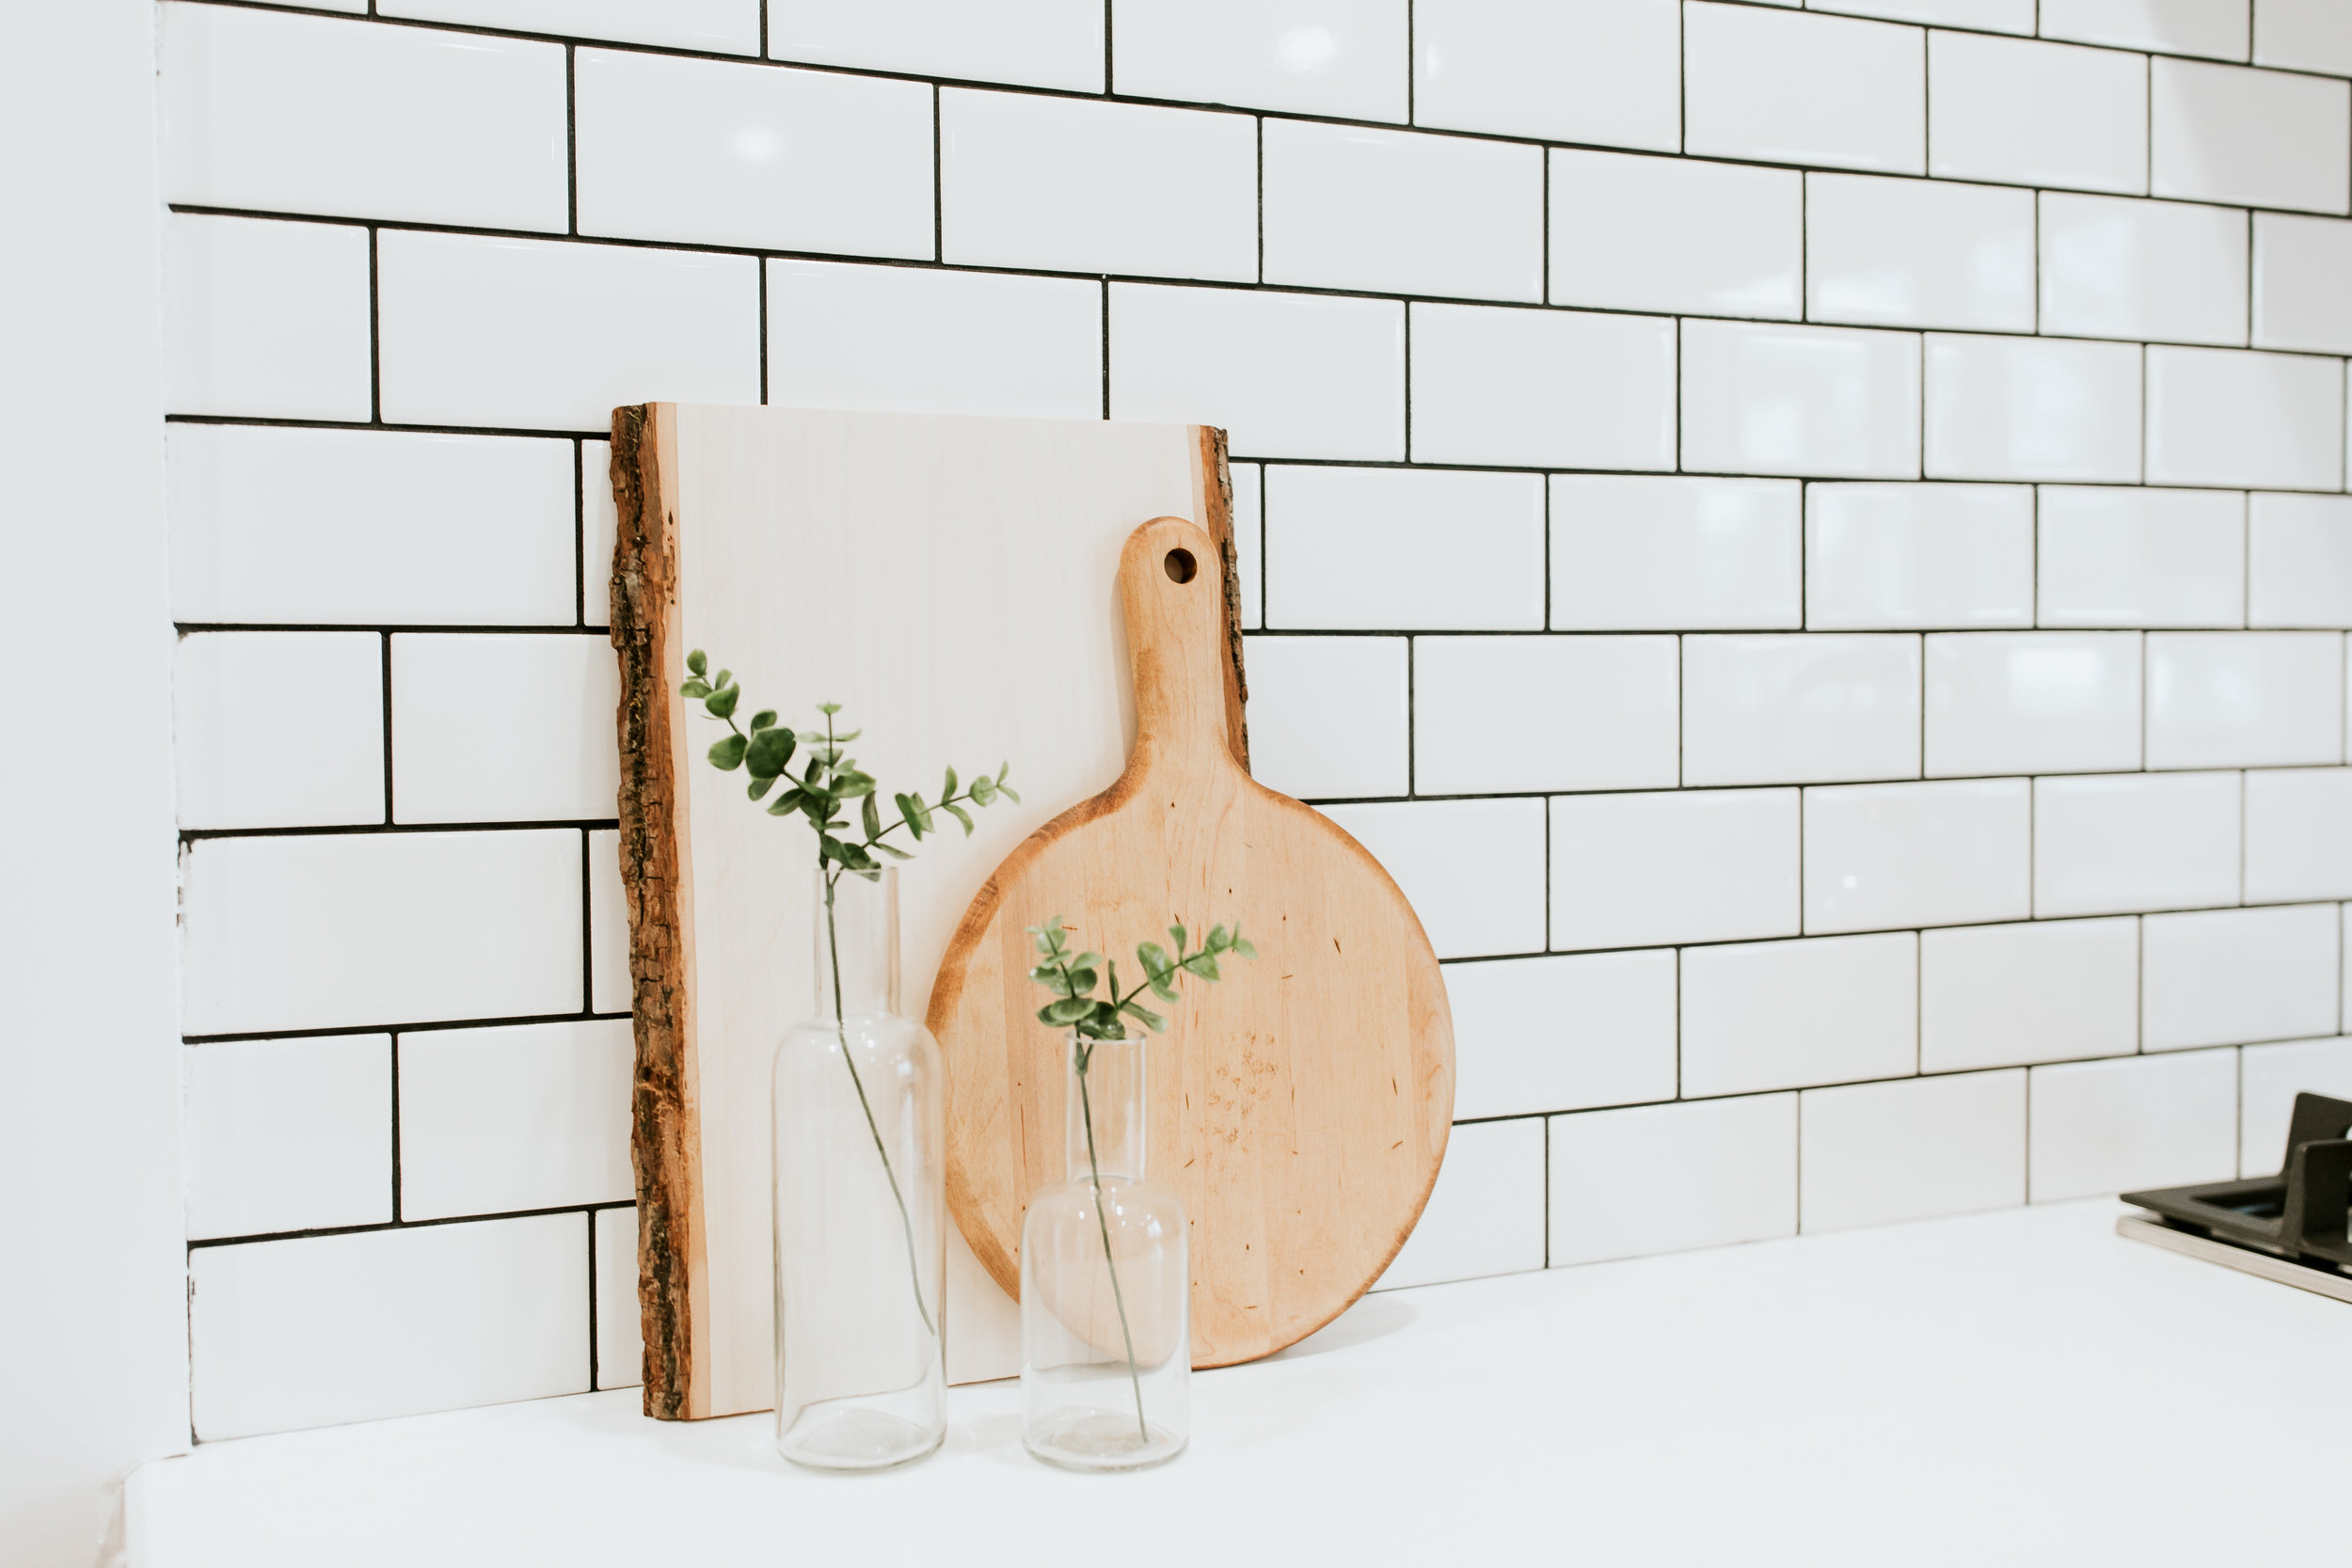 modern kitchen sources - Ikea kungsbacka cabinets, subway tile, modern decor, wood cheese board